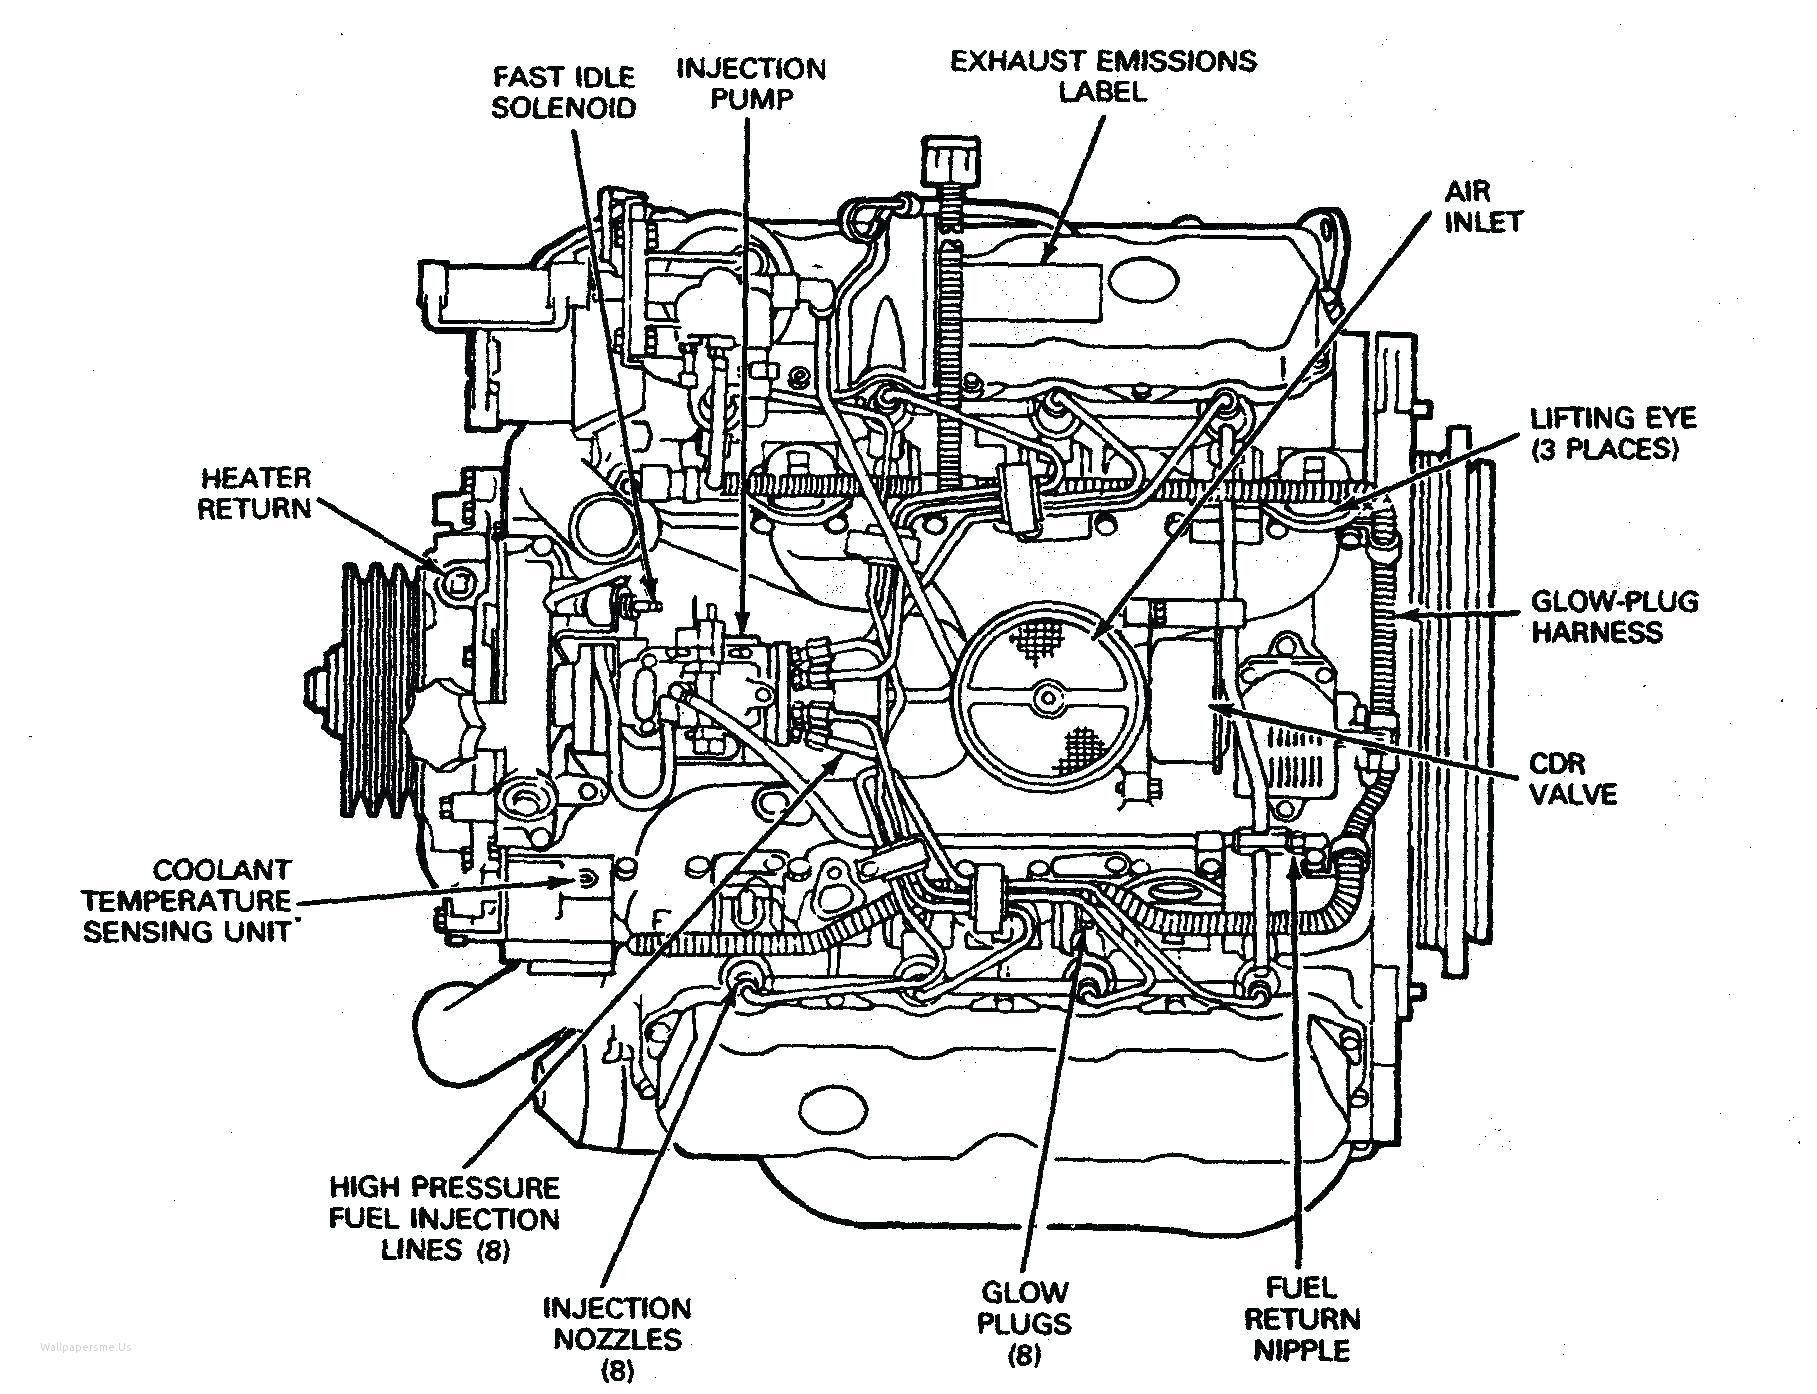 1999 ford mustang engine diagram 2008 bmw 328i engine